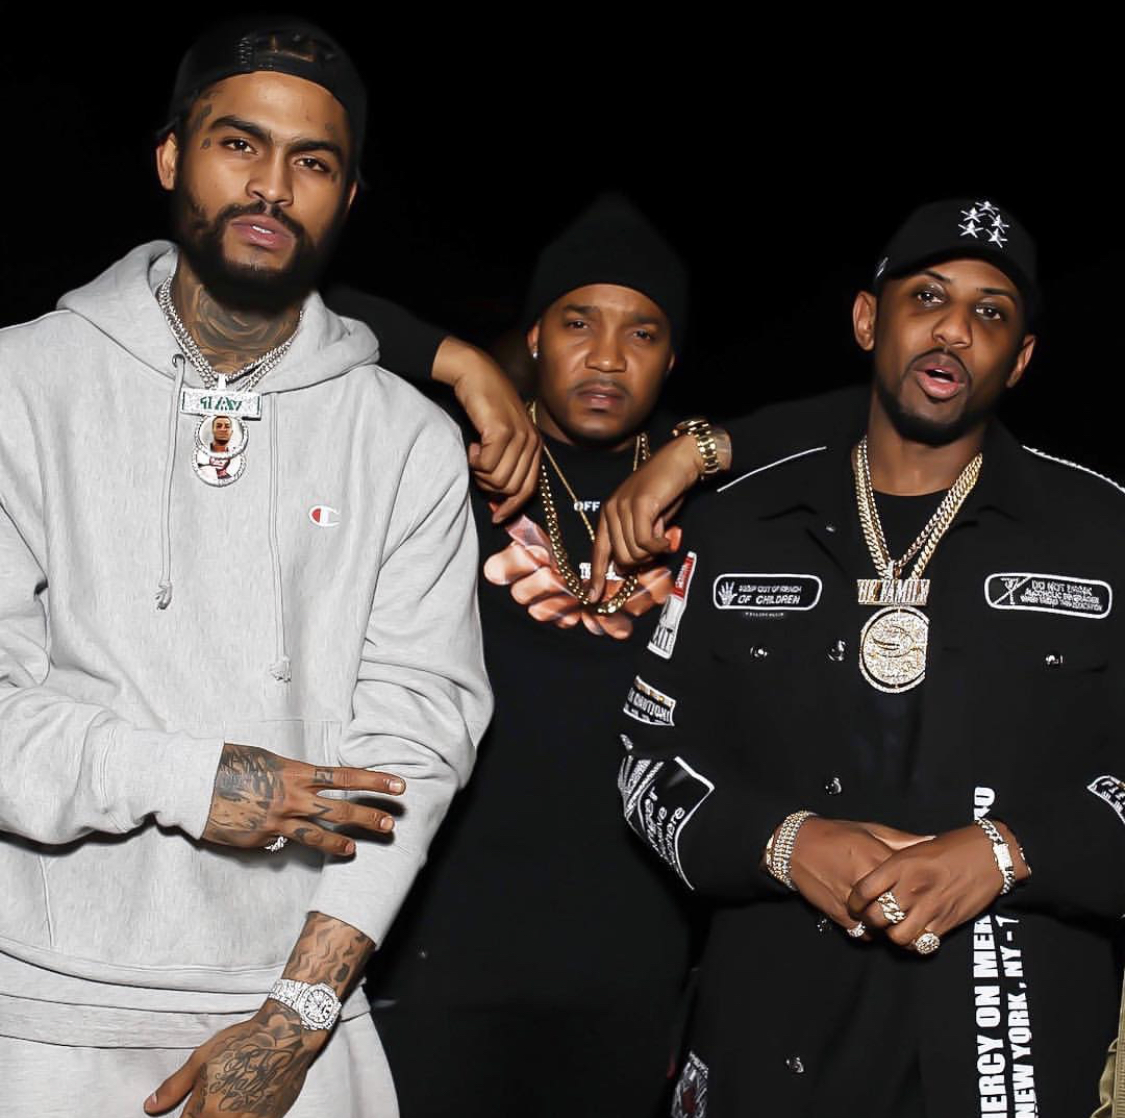 DJ Boof with Dave East and Fabolous. -